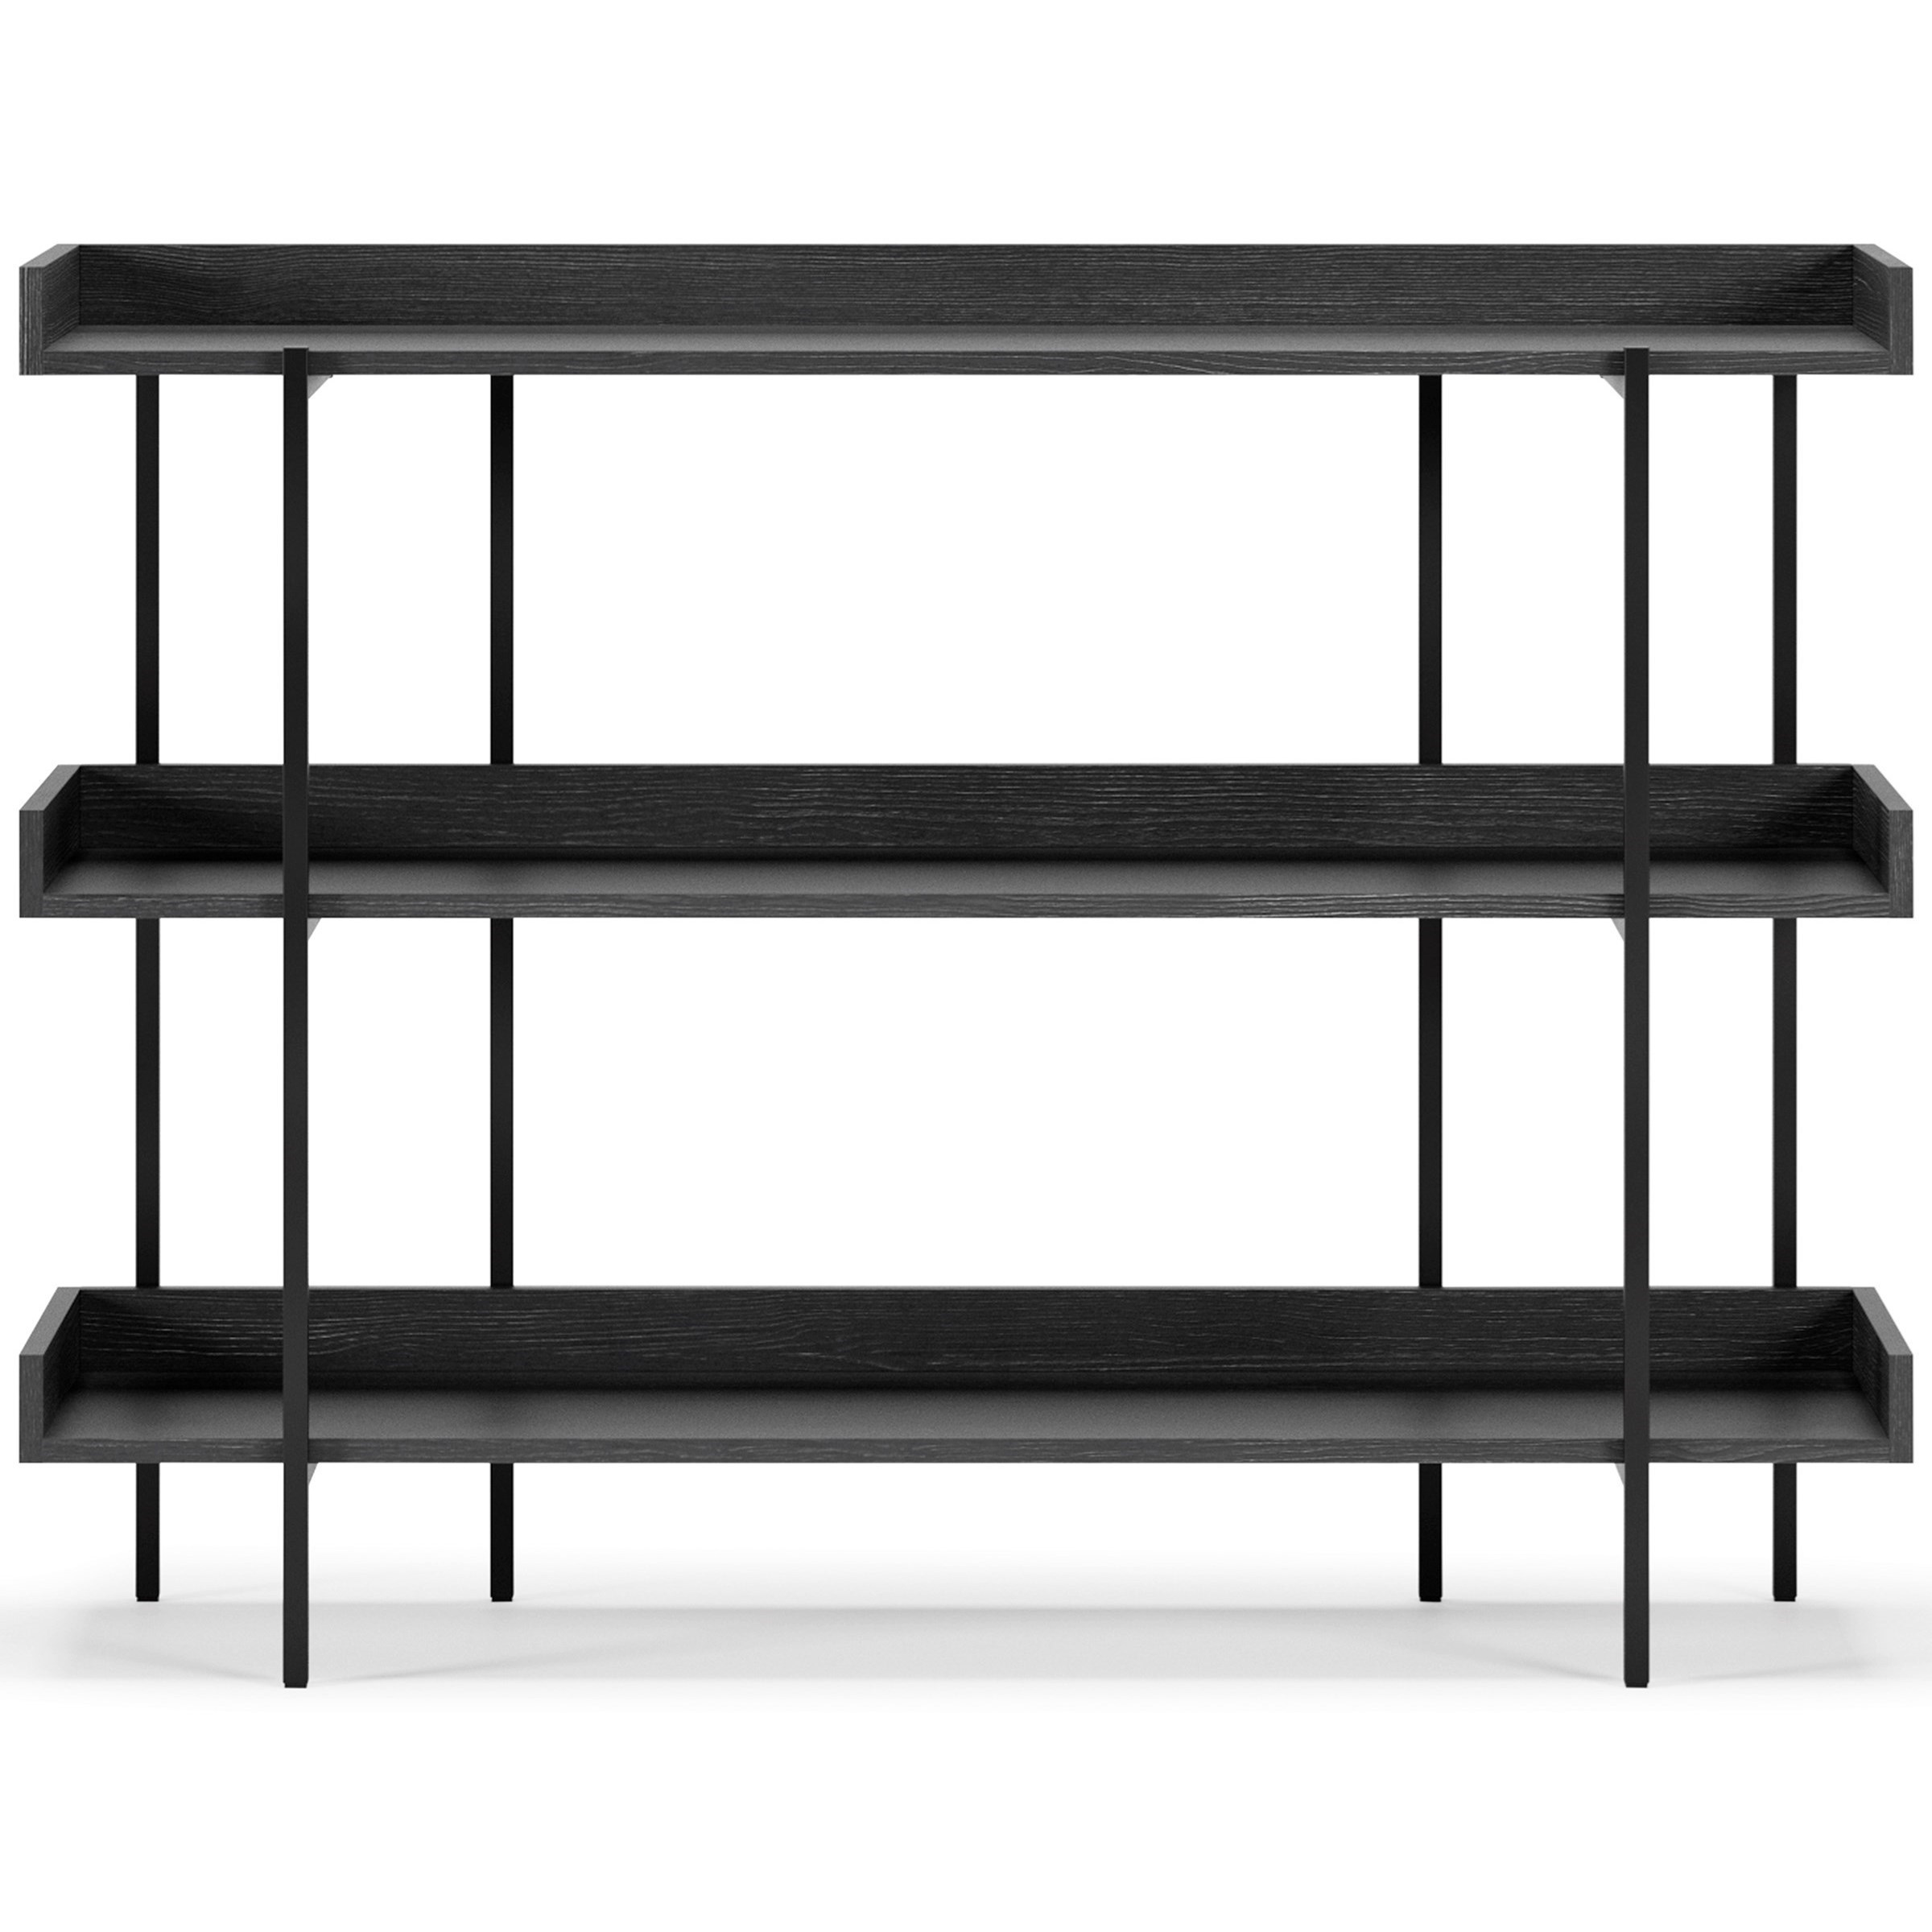 Console/Bookshelf with Gallery Shelves